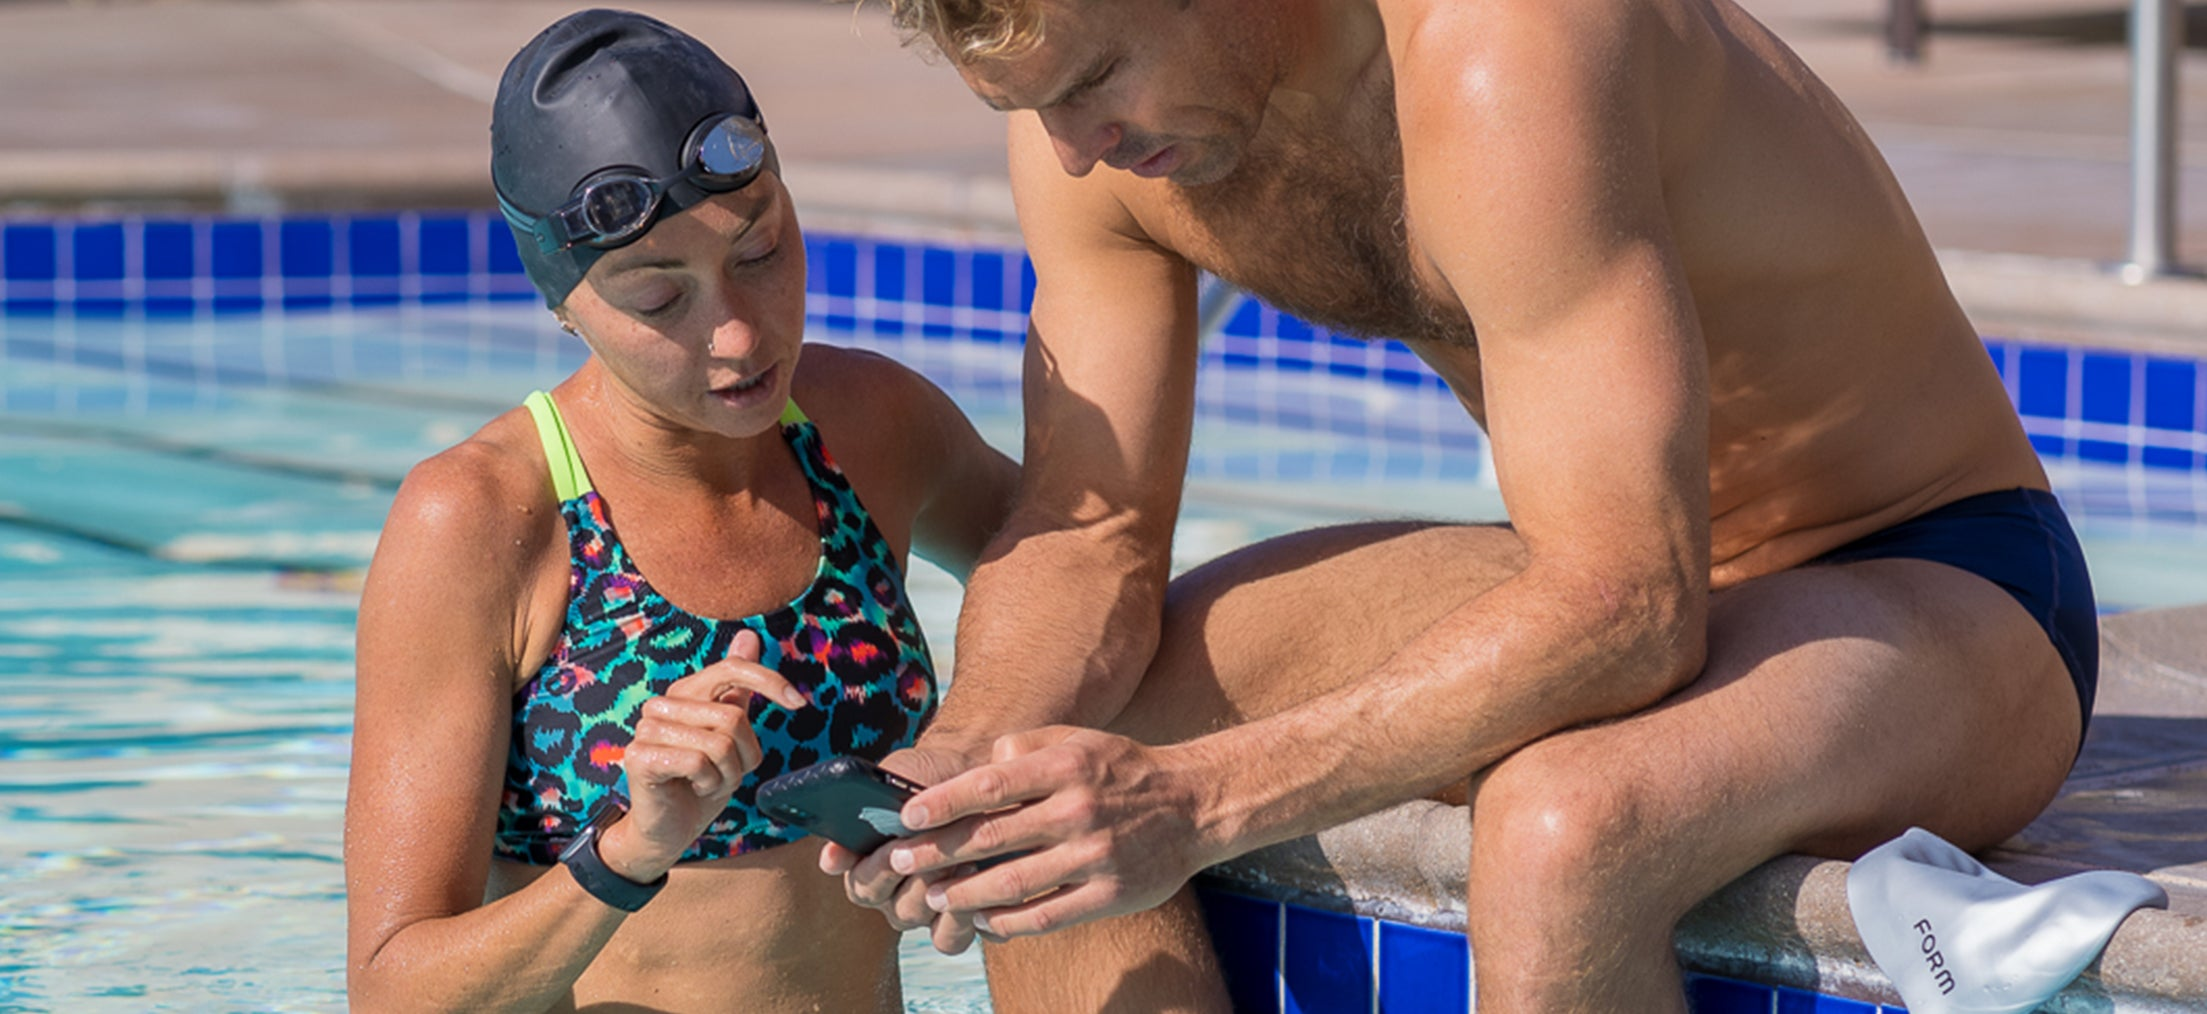 FORM swim app provides the data to reflect on after your swim.